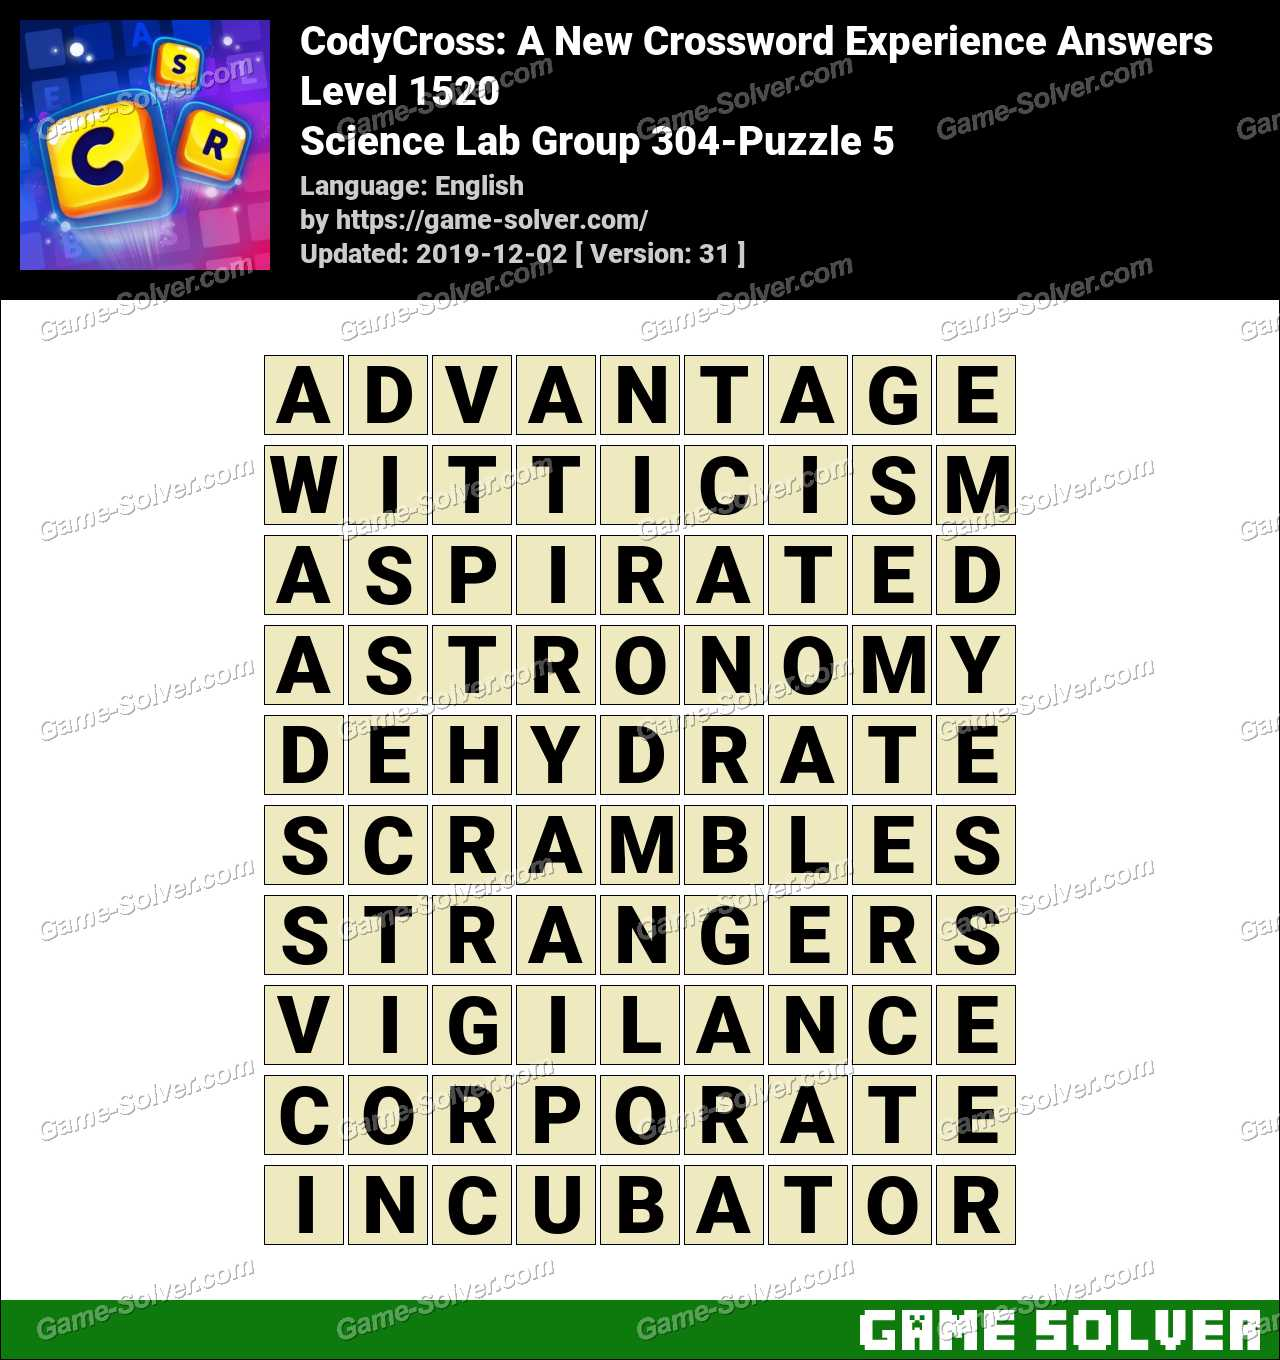 CodyCross Science Lab Group 304-Puzzle 5 Answers